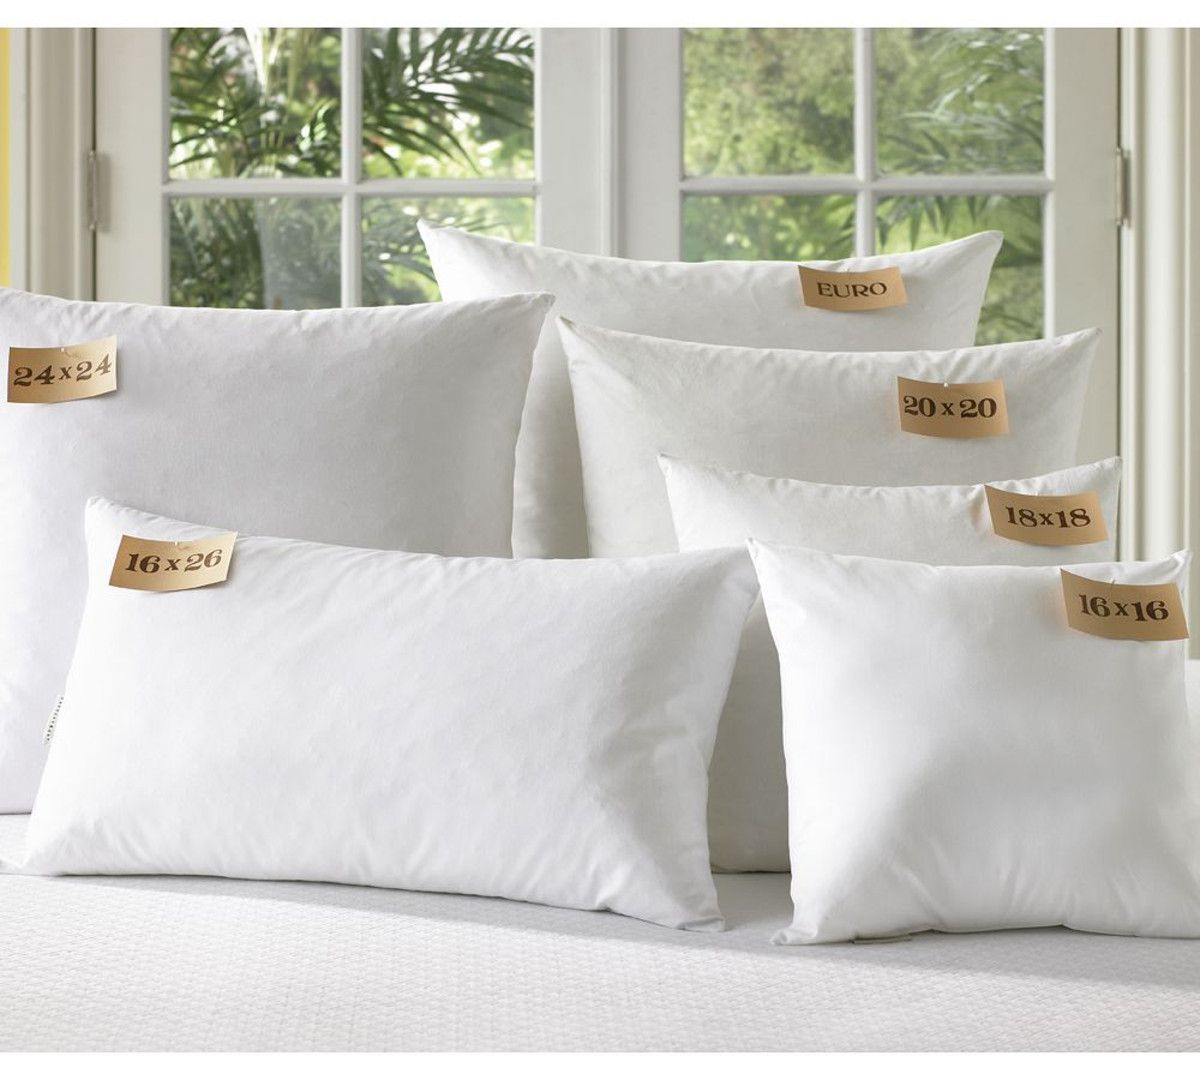 Pottery Barn Pillow Inserts Delectable Featherdown Blend Pillow & Cushion Inserts  Pottery Barn Au Design Ideas